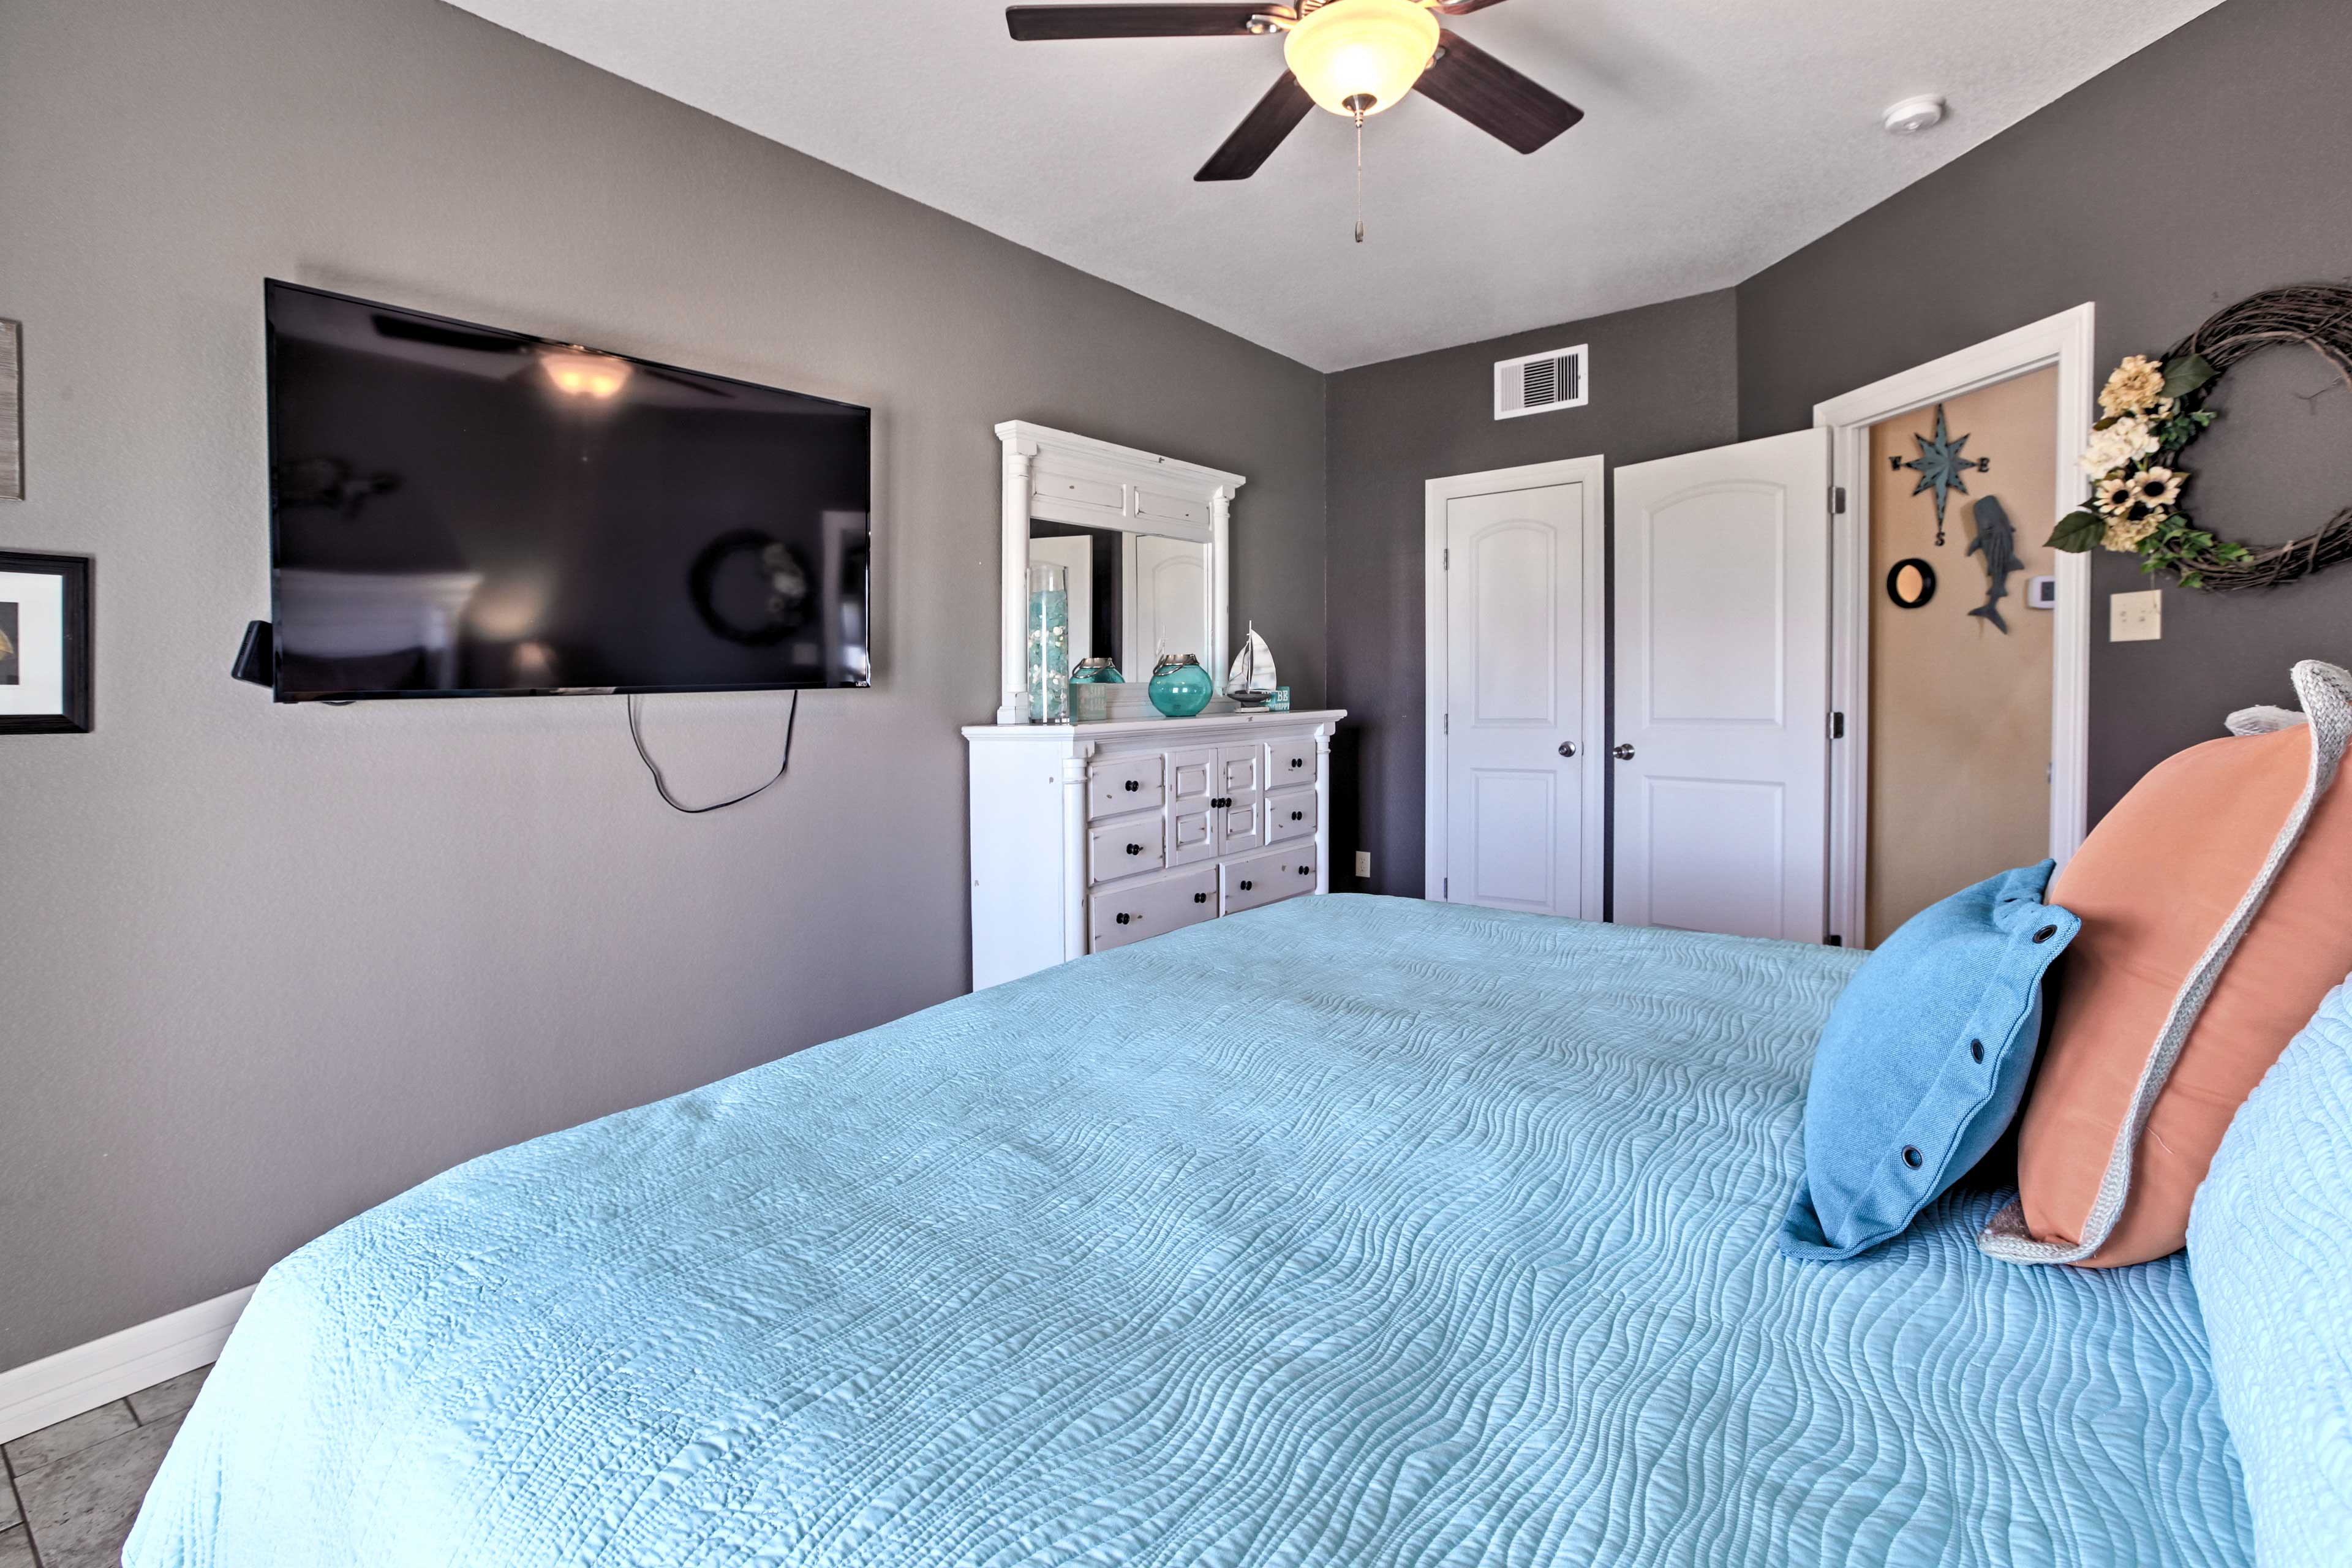 Watch a new movie from under the covers of this king bed in the master bedroom!